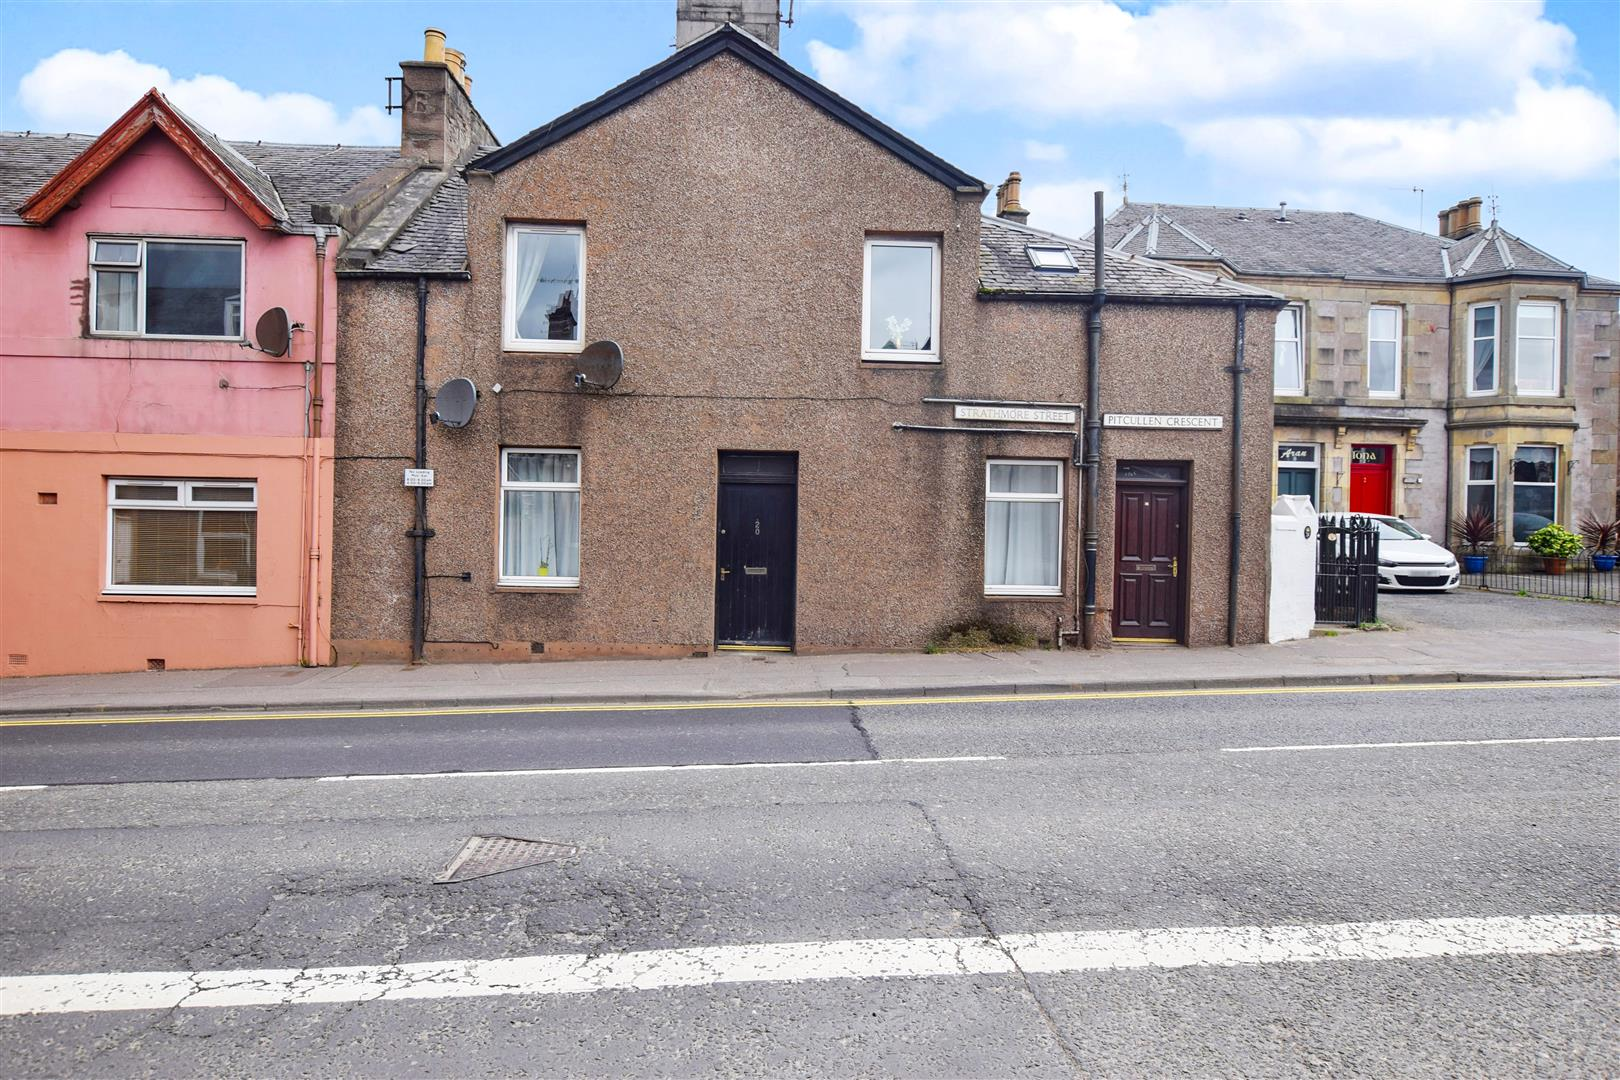 20, Strathmore Street, Perth, Perthshire, PH2 7HP, UK